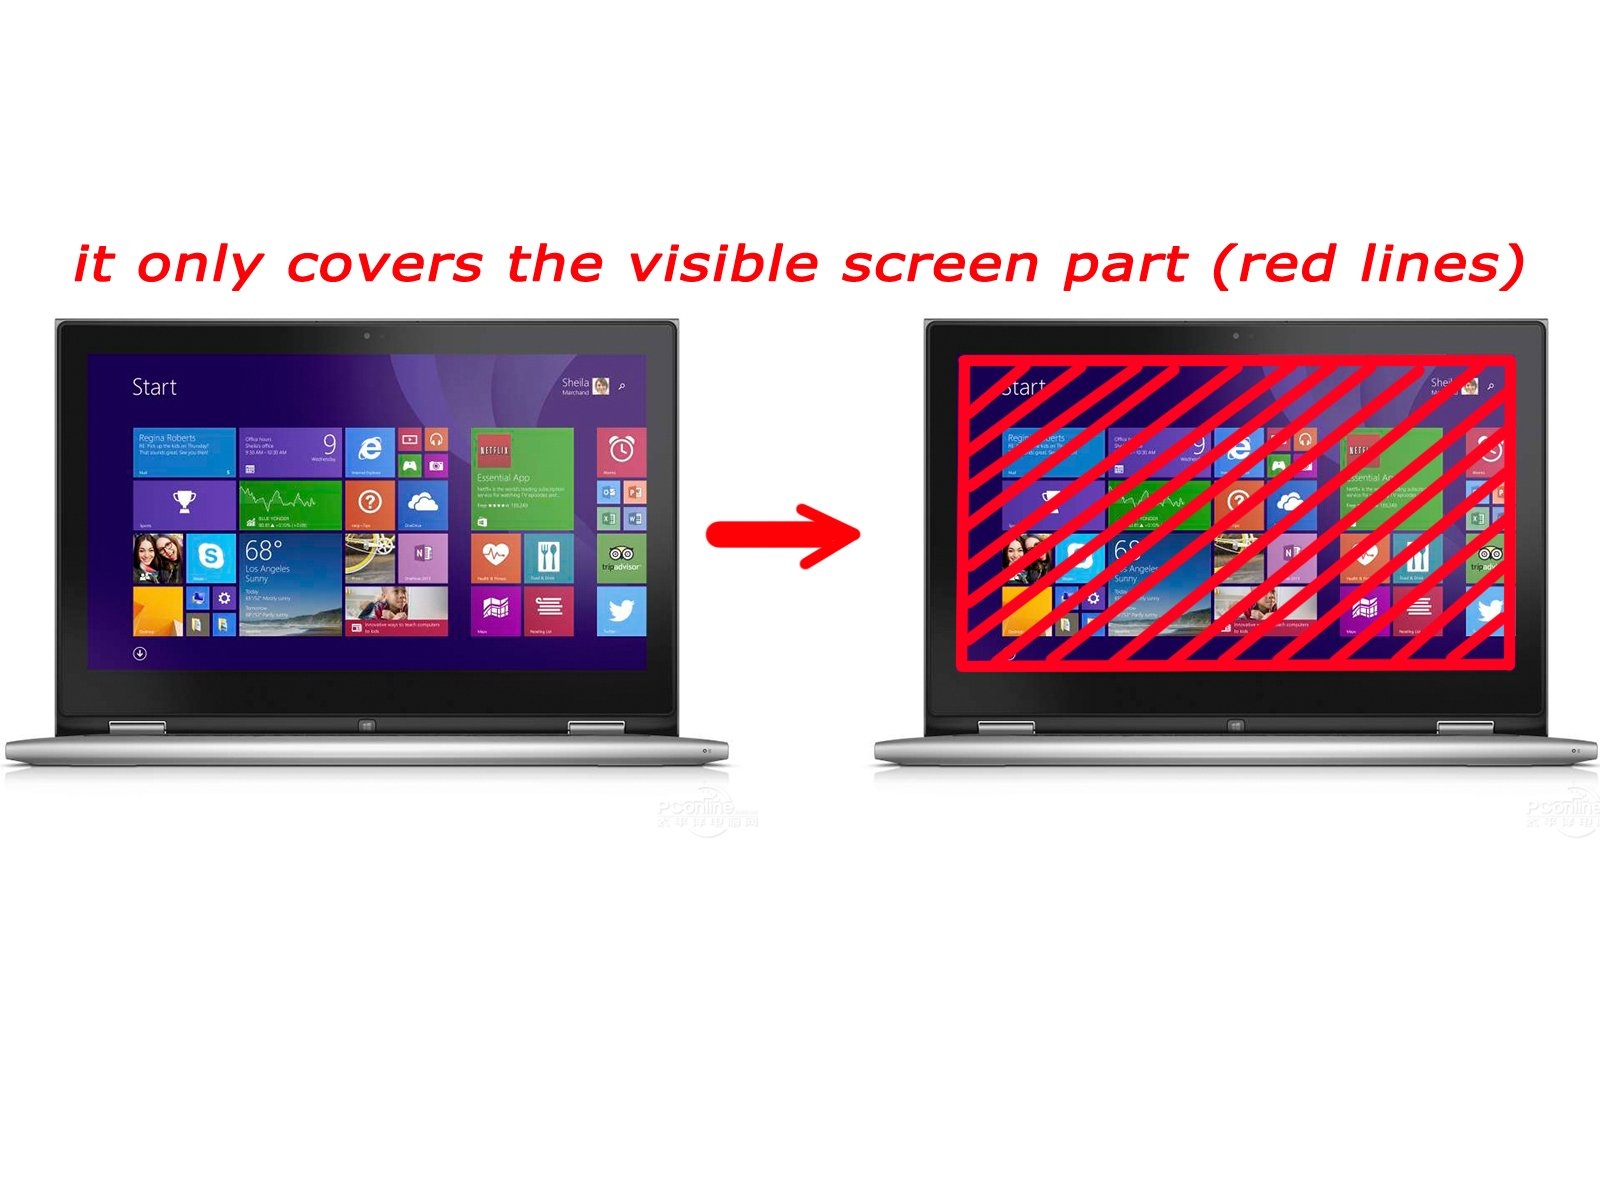 BingoBuy® anti glare & anti fingerprint & anti scratch Screen Protector Cover Film (only cover visible screen part like ads, length 345mm x width 194.5mm) for 15.6'' 16:9 Toshiba Satellite C655, C655D, L655, L655D, L650, L650D, L750, L750D, L755, L755D,